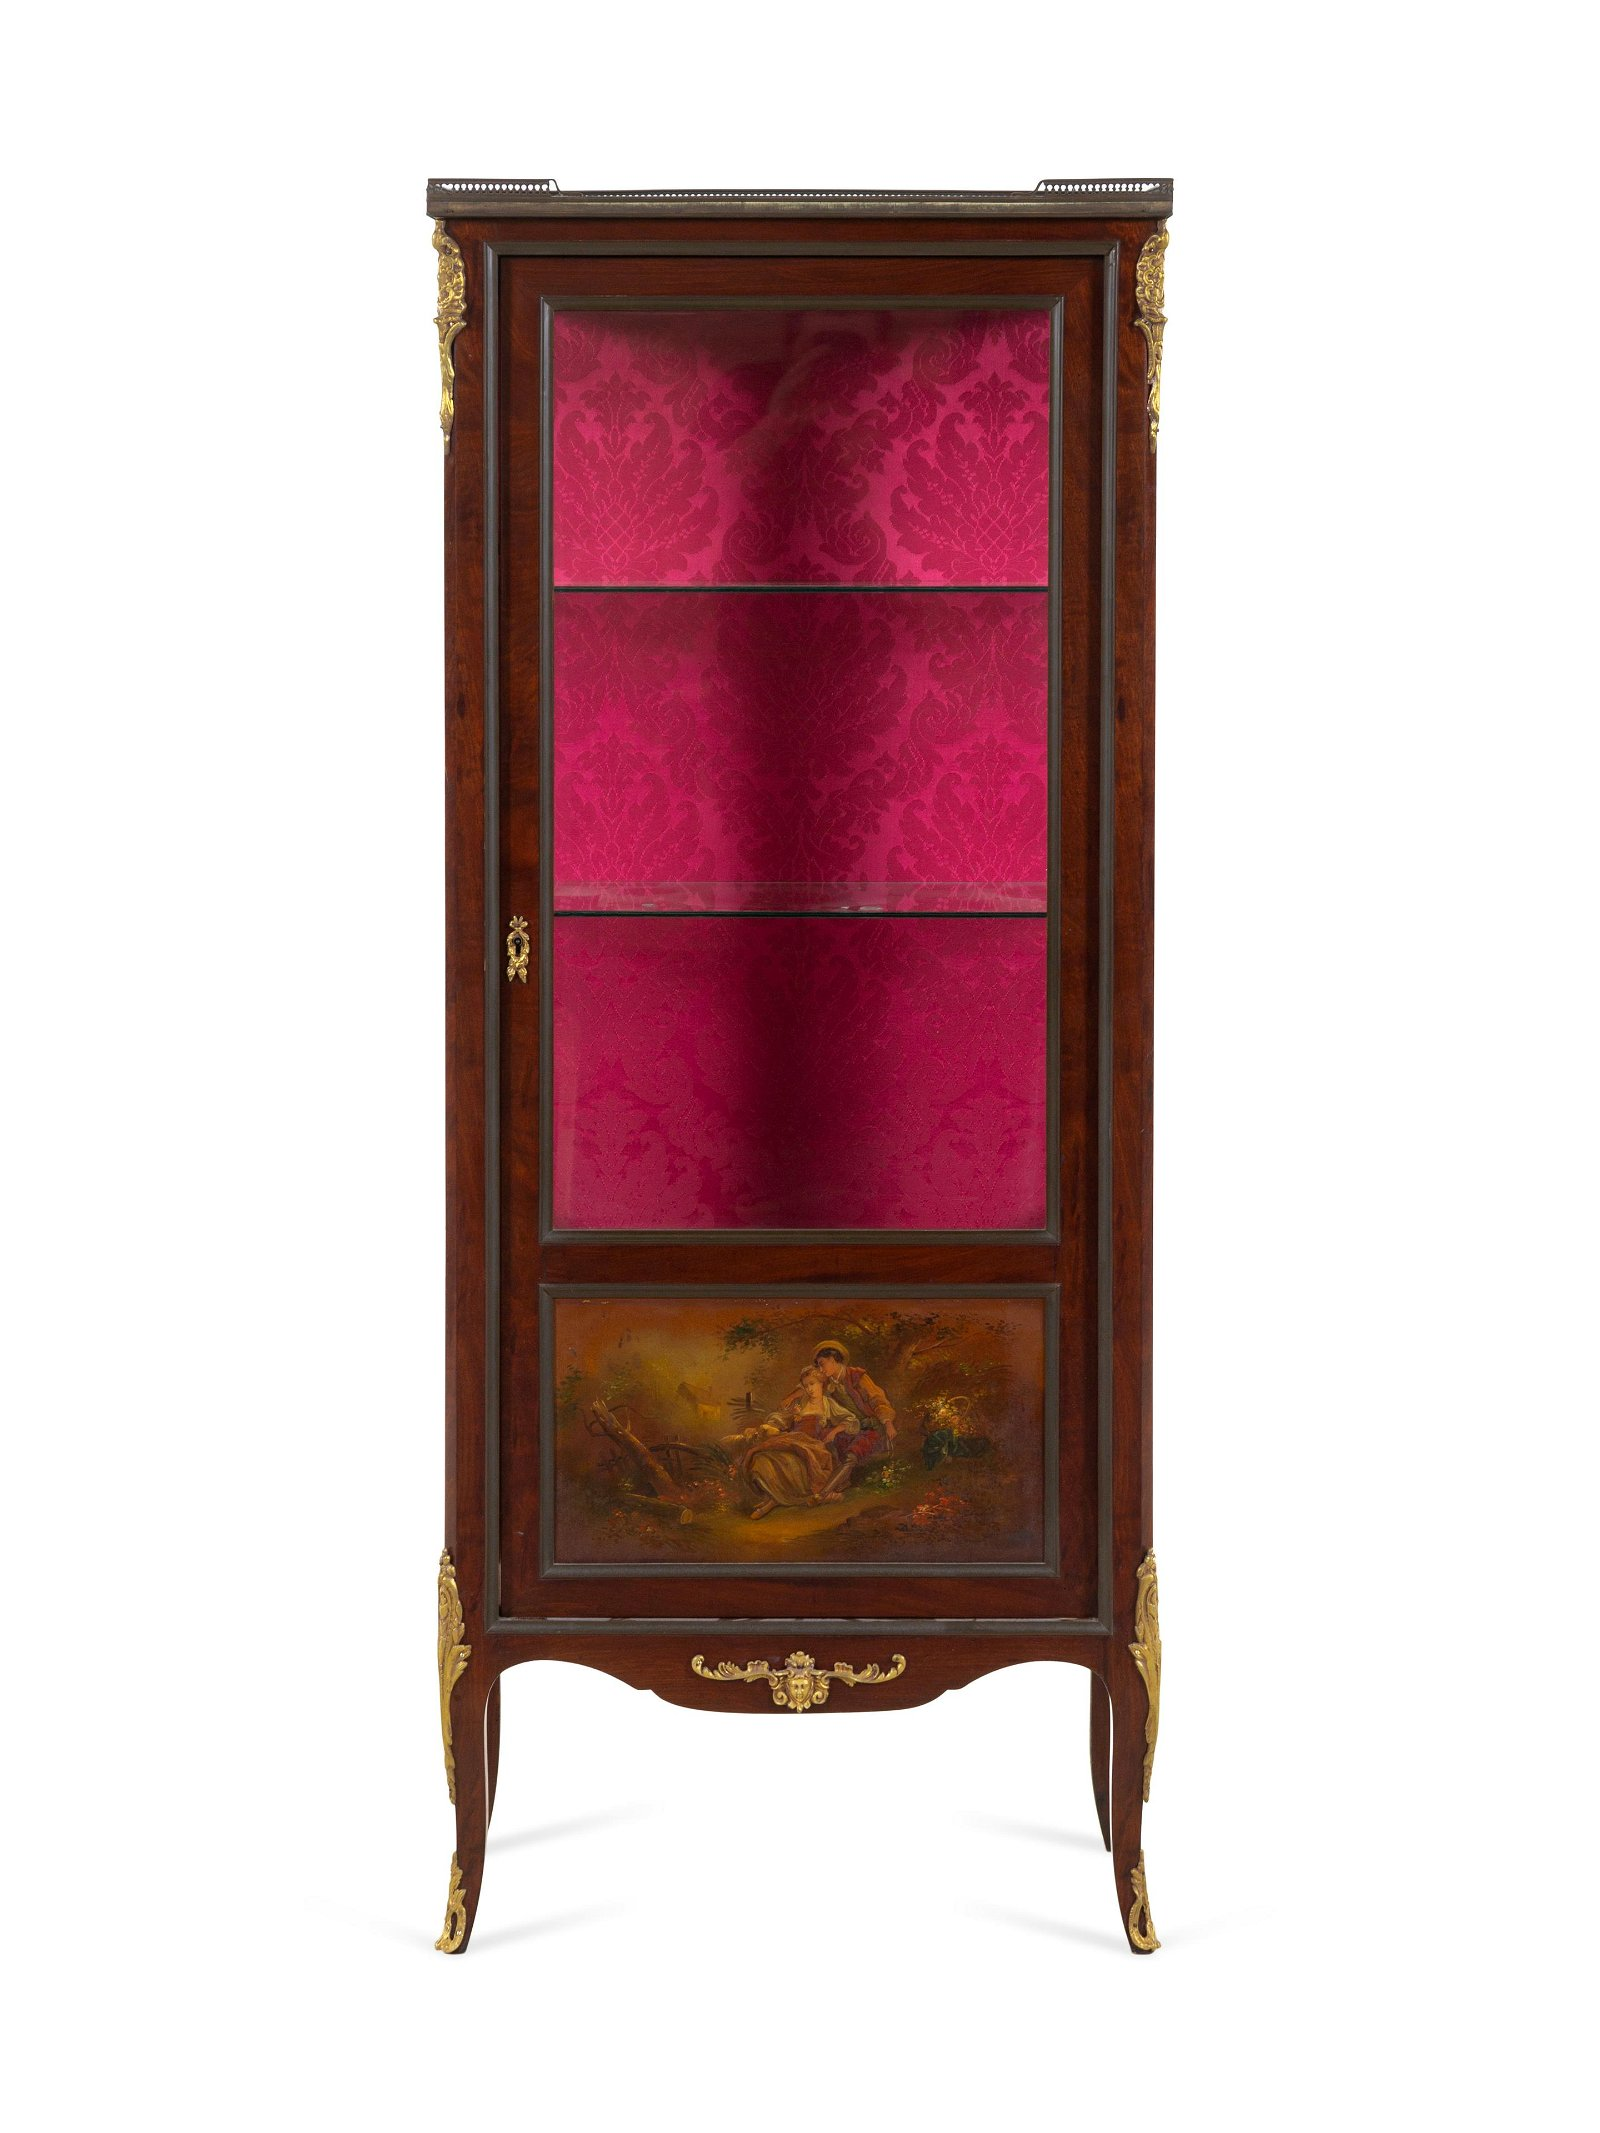 A Louis XV Style Gilt Bronze Mounted Vernis